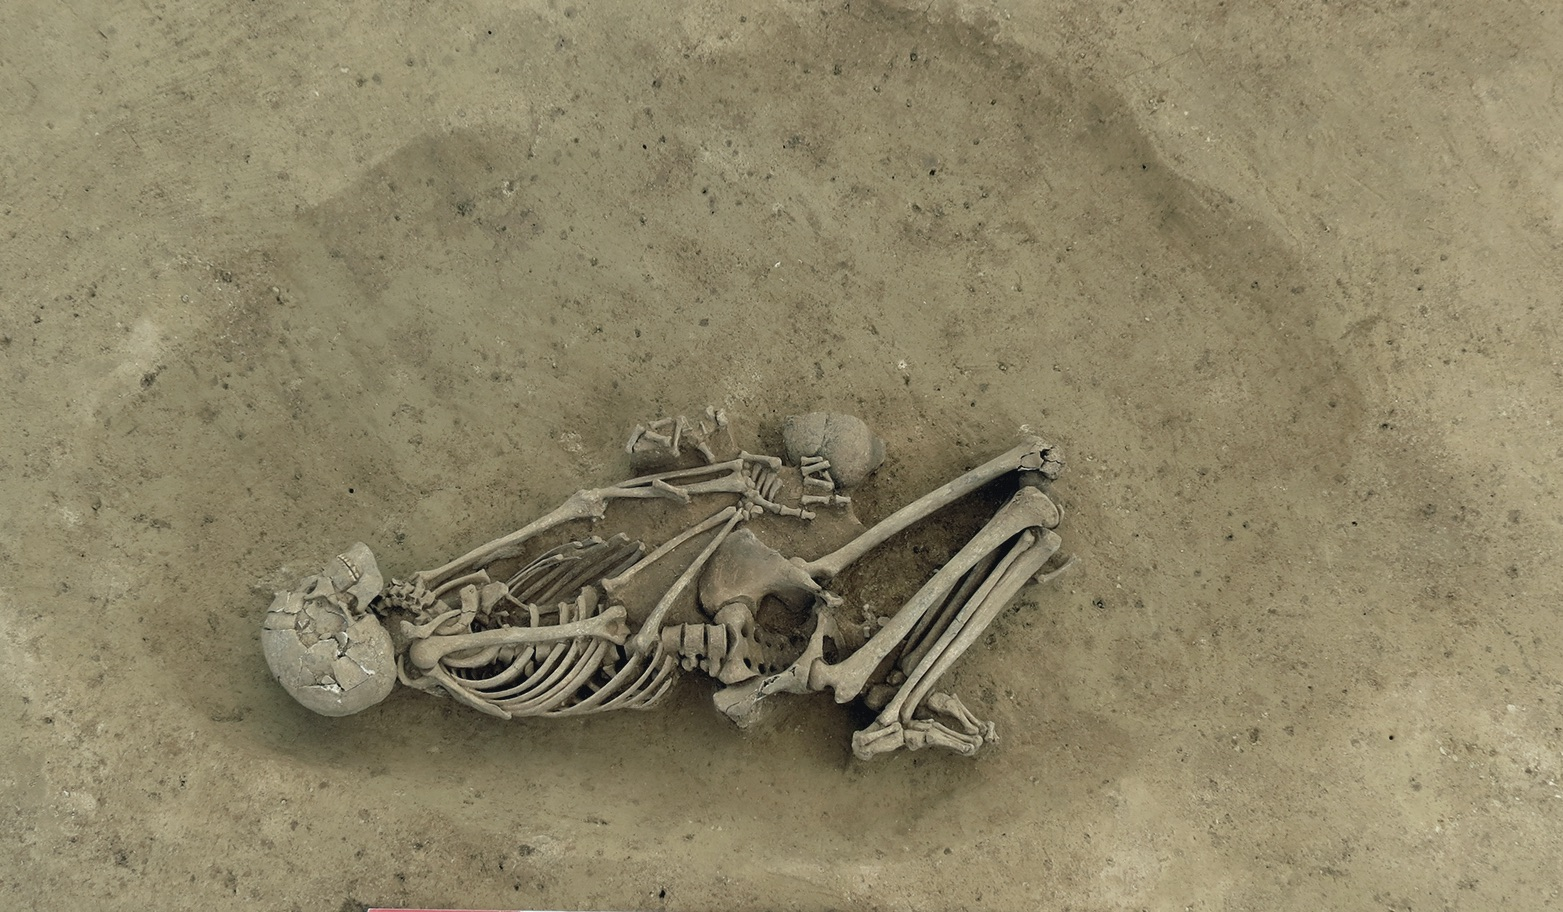 Early Neolithic burial from Alsace (Morschwiller-le-Bas  Ungeheuer Hoelzle, Haut-Rhin)